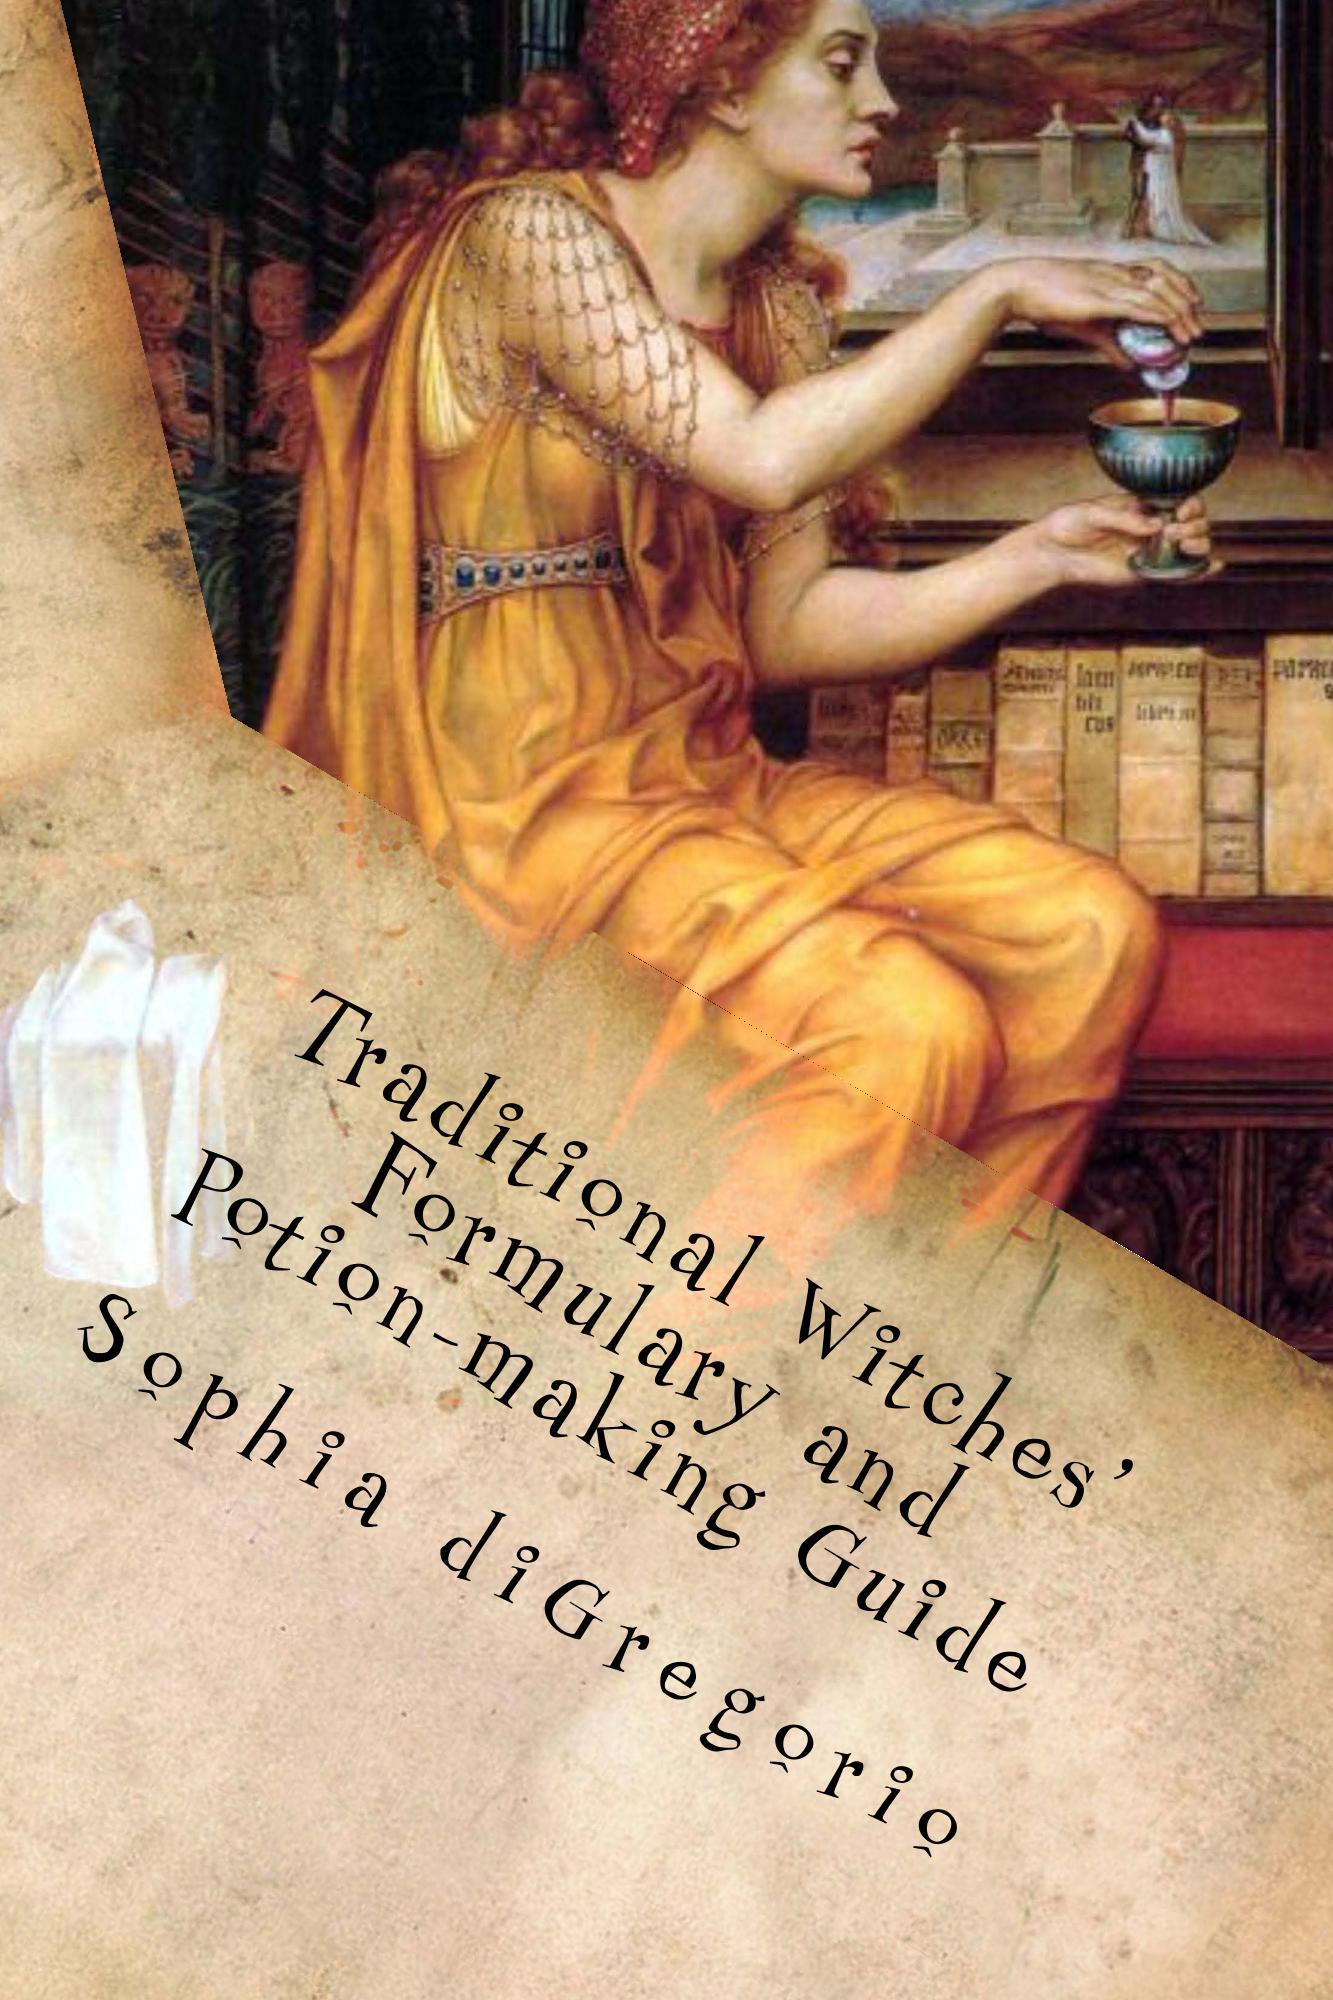 Traditional Witches' Formulary and Potion-making Guide